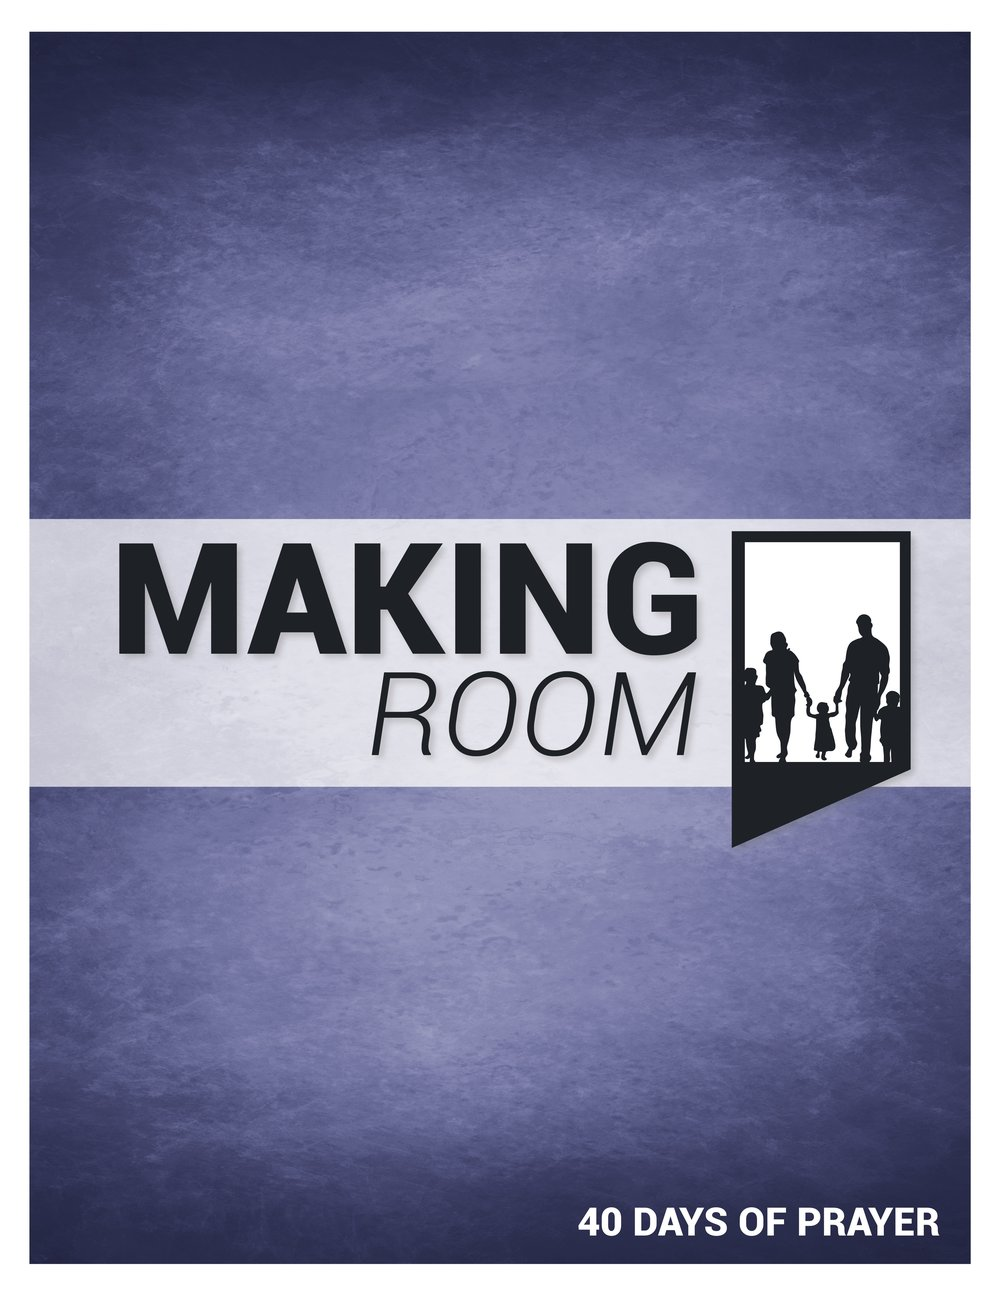 making room.jpg